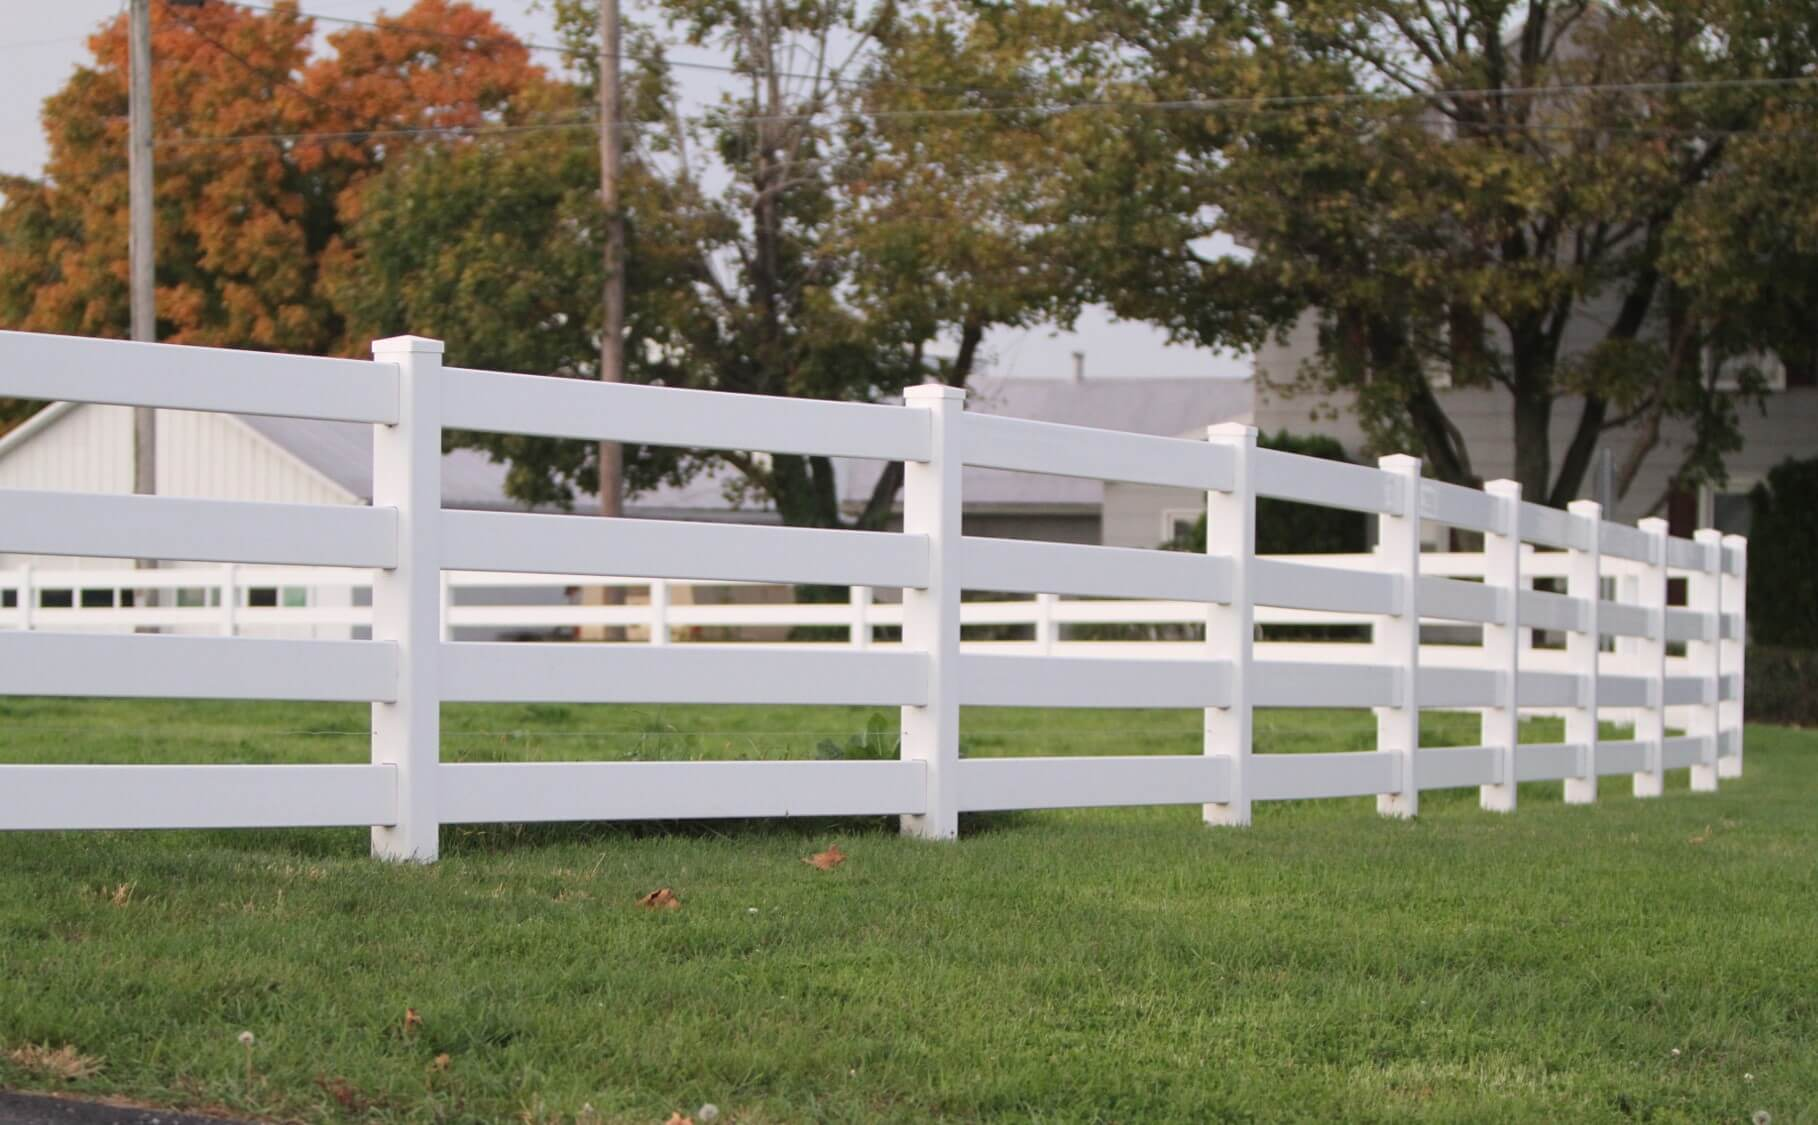 2 Rail Vinyl Post And Rail Fencing Fence Post Post And Rail Fence Fence